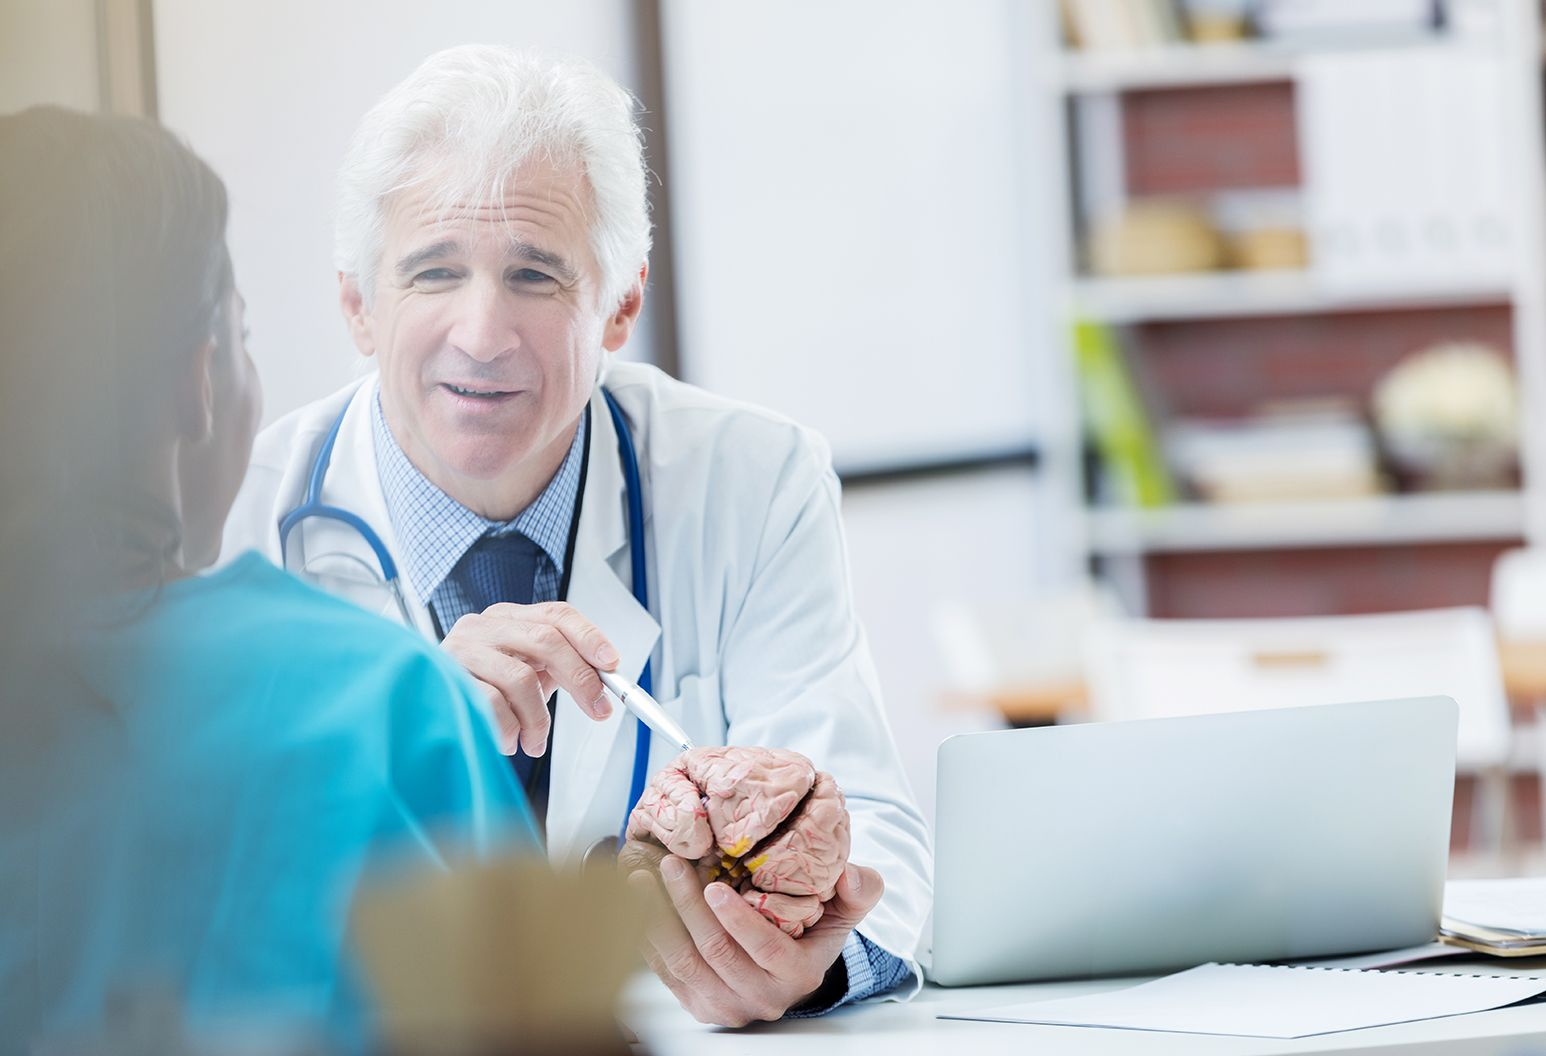 Confident Caucasian senior male neurosurgeon consults with a colleague about a patient's diagnosis. The male doctor is holding a human brain model.